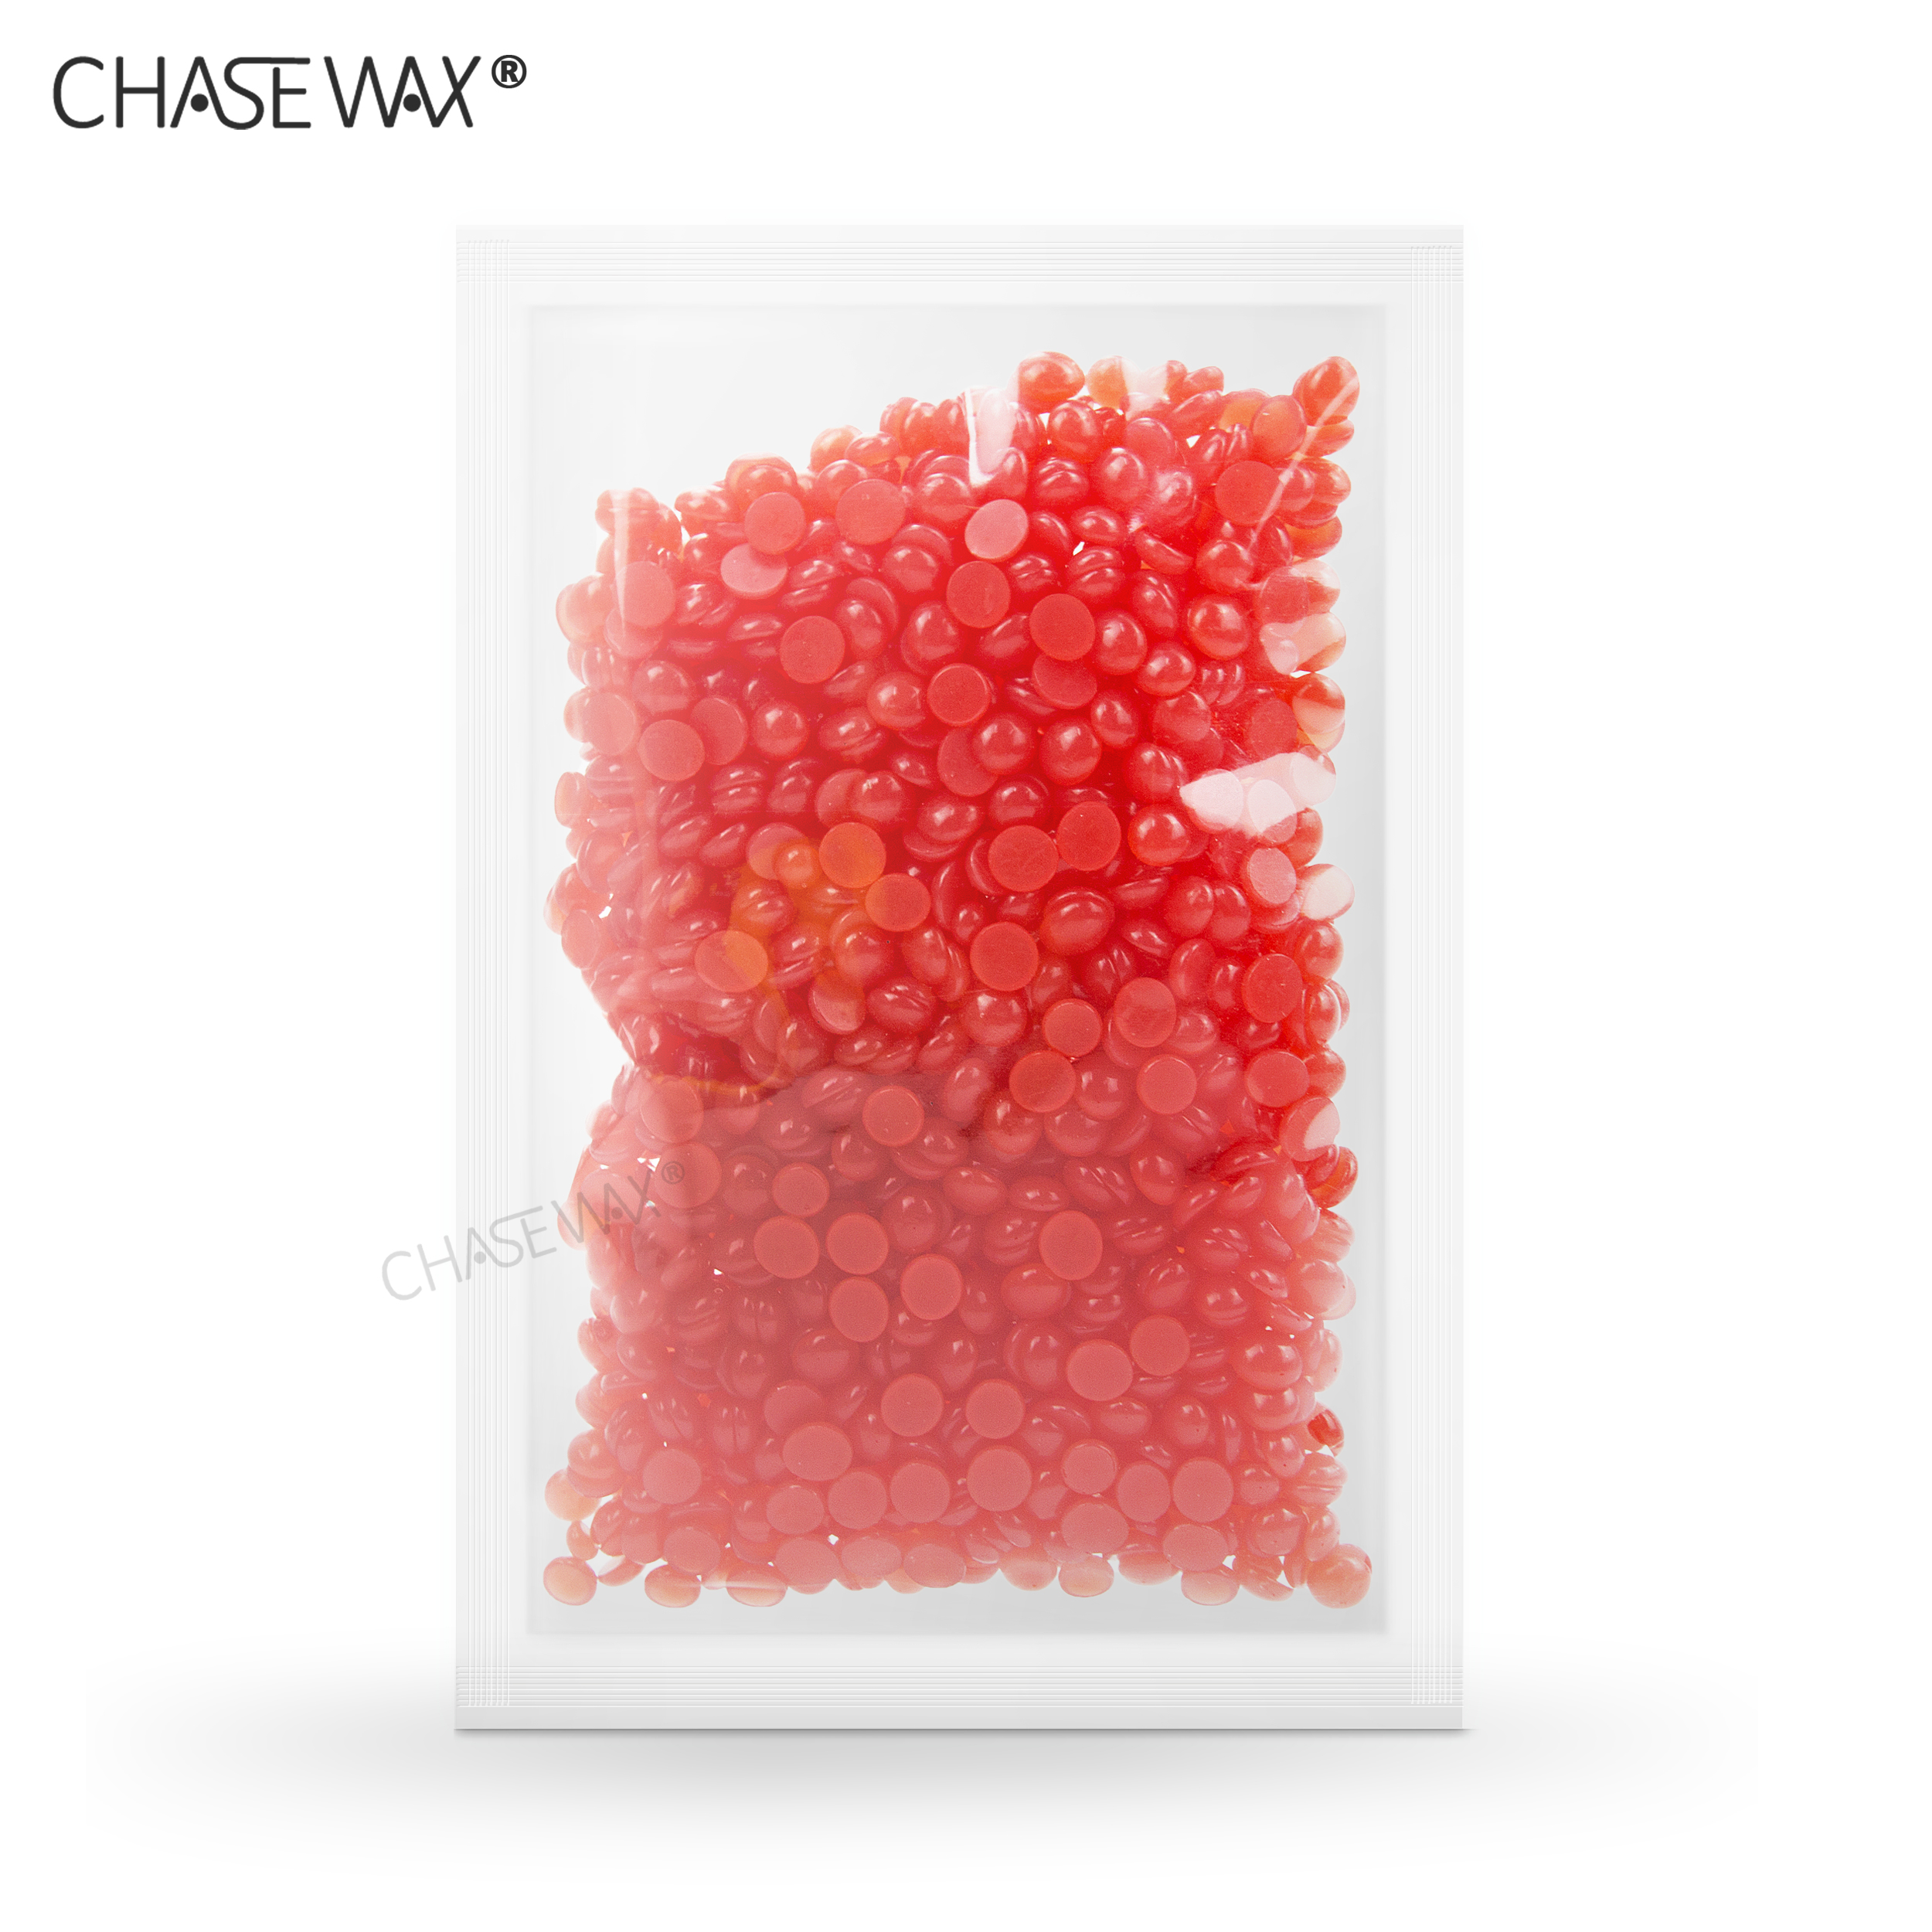 Gentle 100g <strong>Strawberry</strong> Hard Wax Hot Wax Beans Depilatory Wax Beads For Whole Body Hair Removal